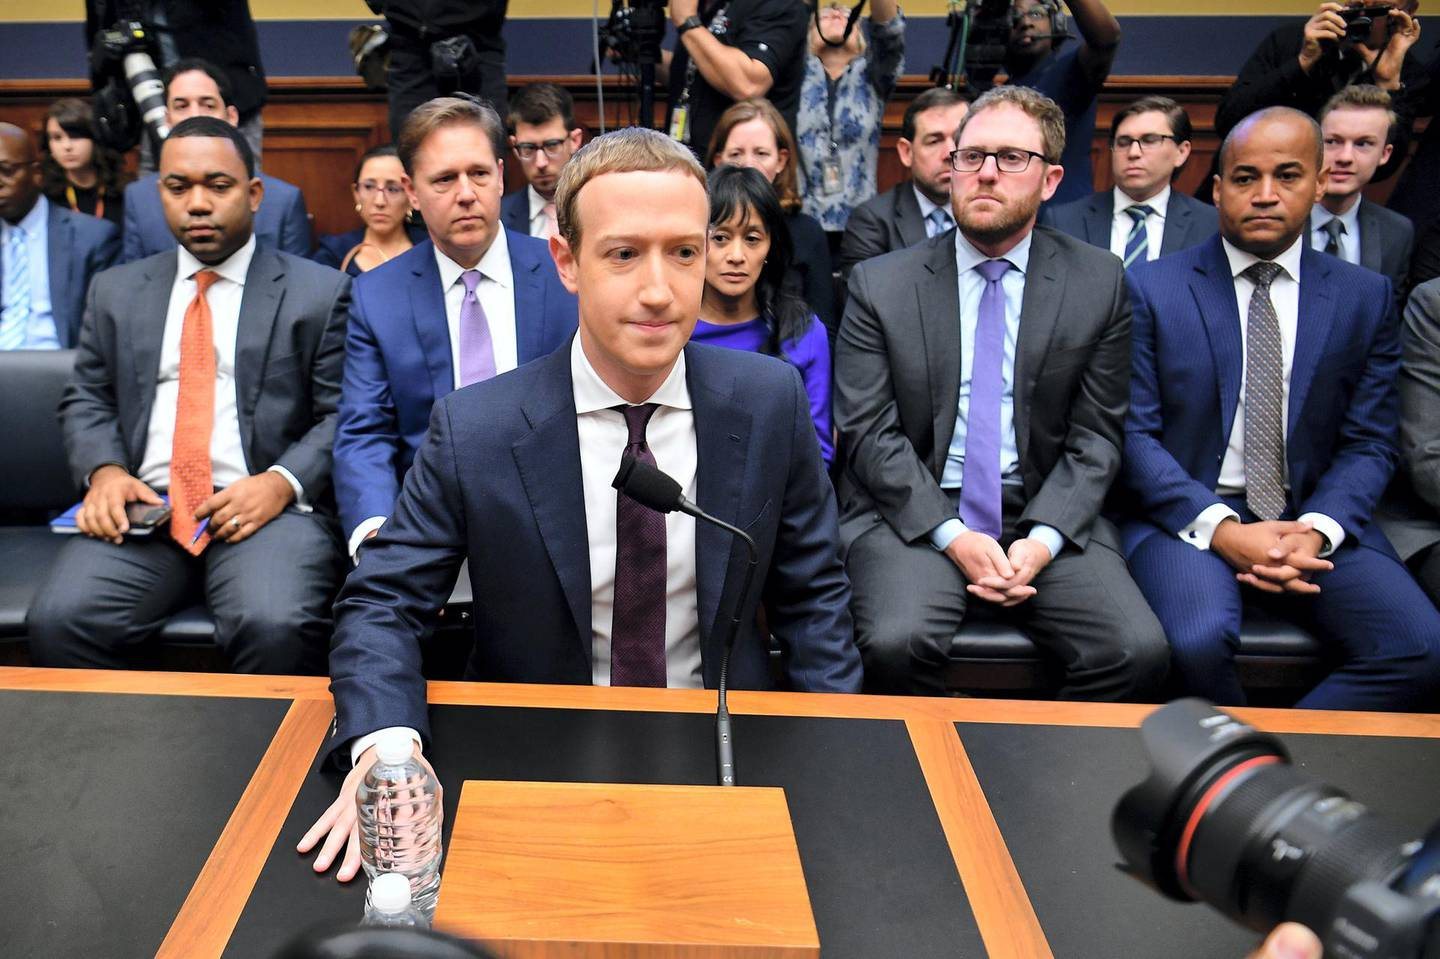 """Facebook Chairman and CEO Mark Zuckerberg arrives to testify before the House Financial Services Committee on """"An Examination of Facebook and Its Impact on the Financial Services and Housing Sectors"""" in the Rayburn House Office Building in Washington, DC on October 23, 2019. (Photo by MANDEL NGAN / AFP)"""